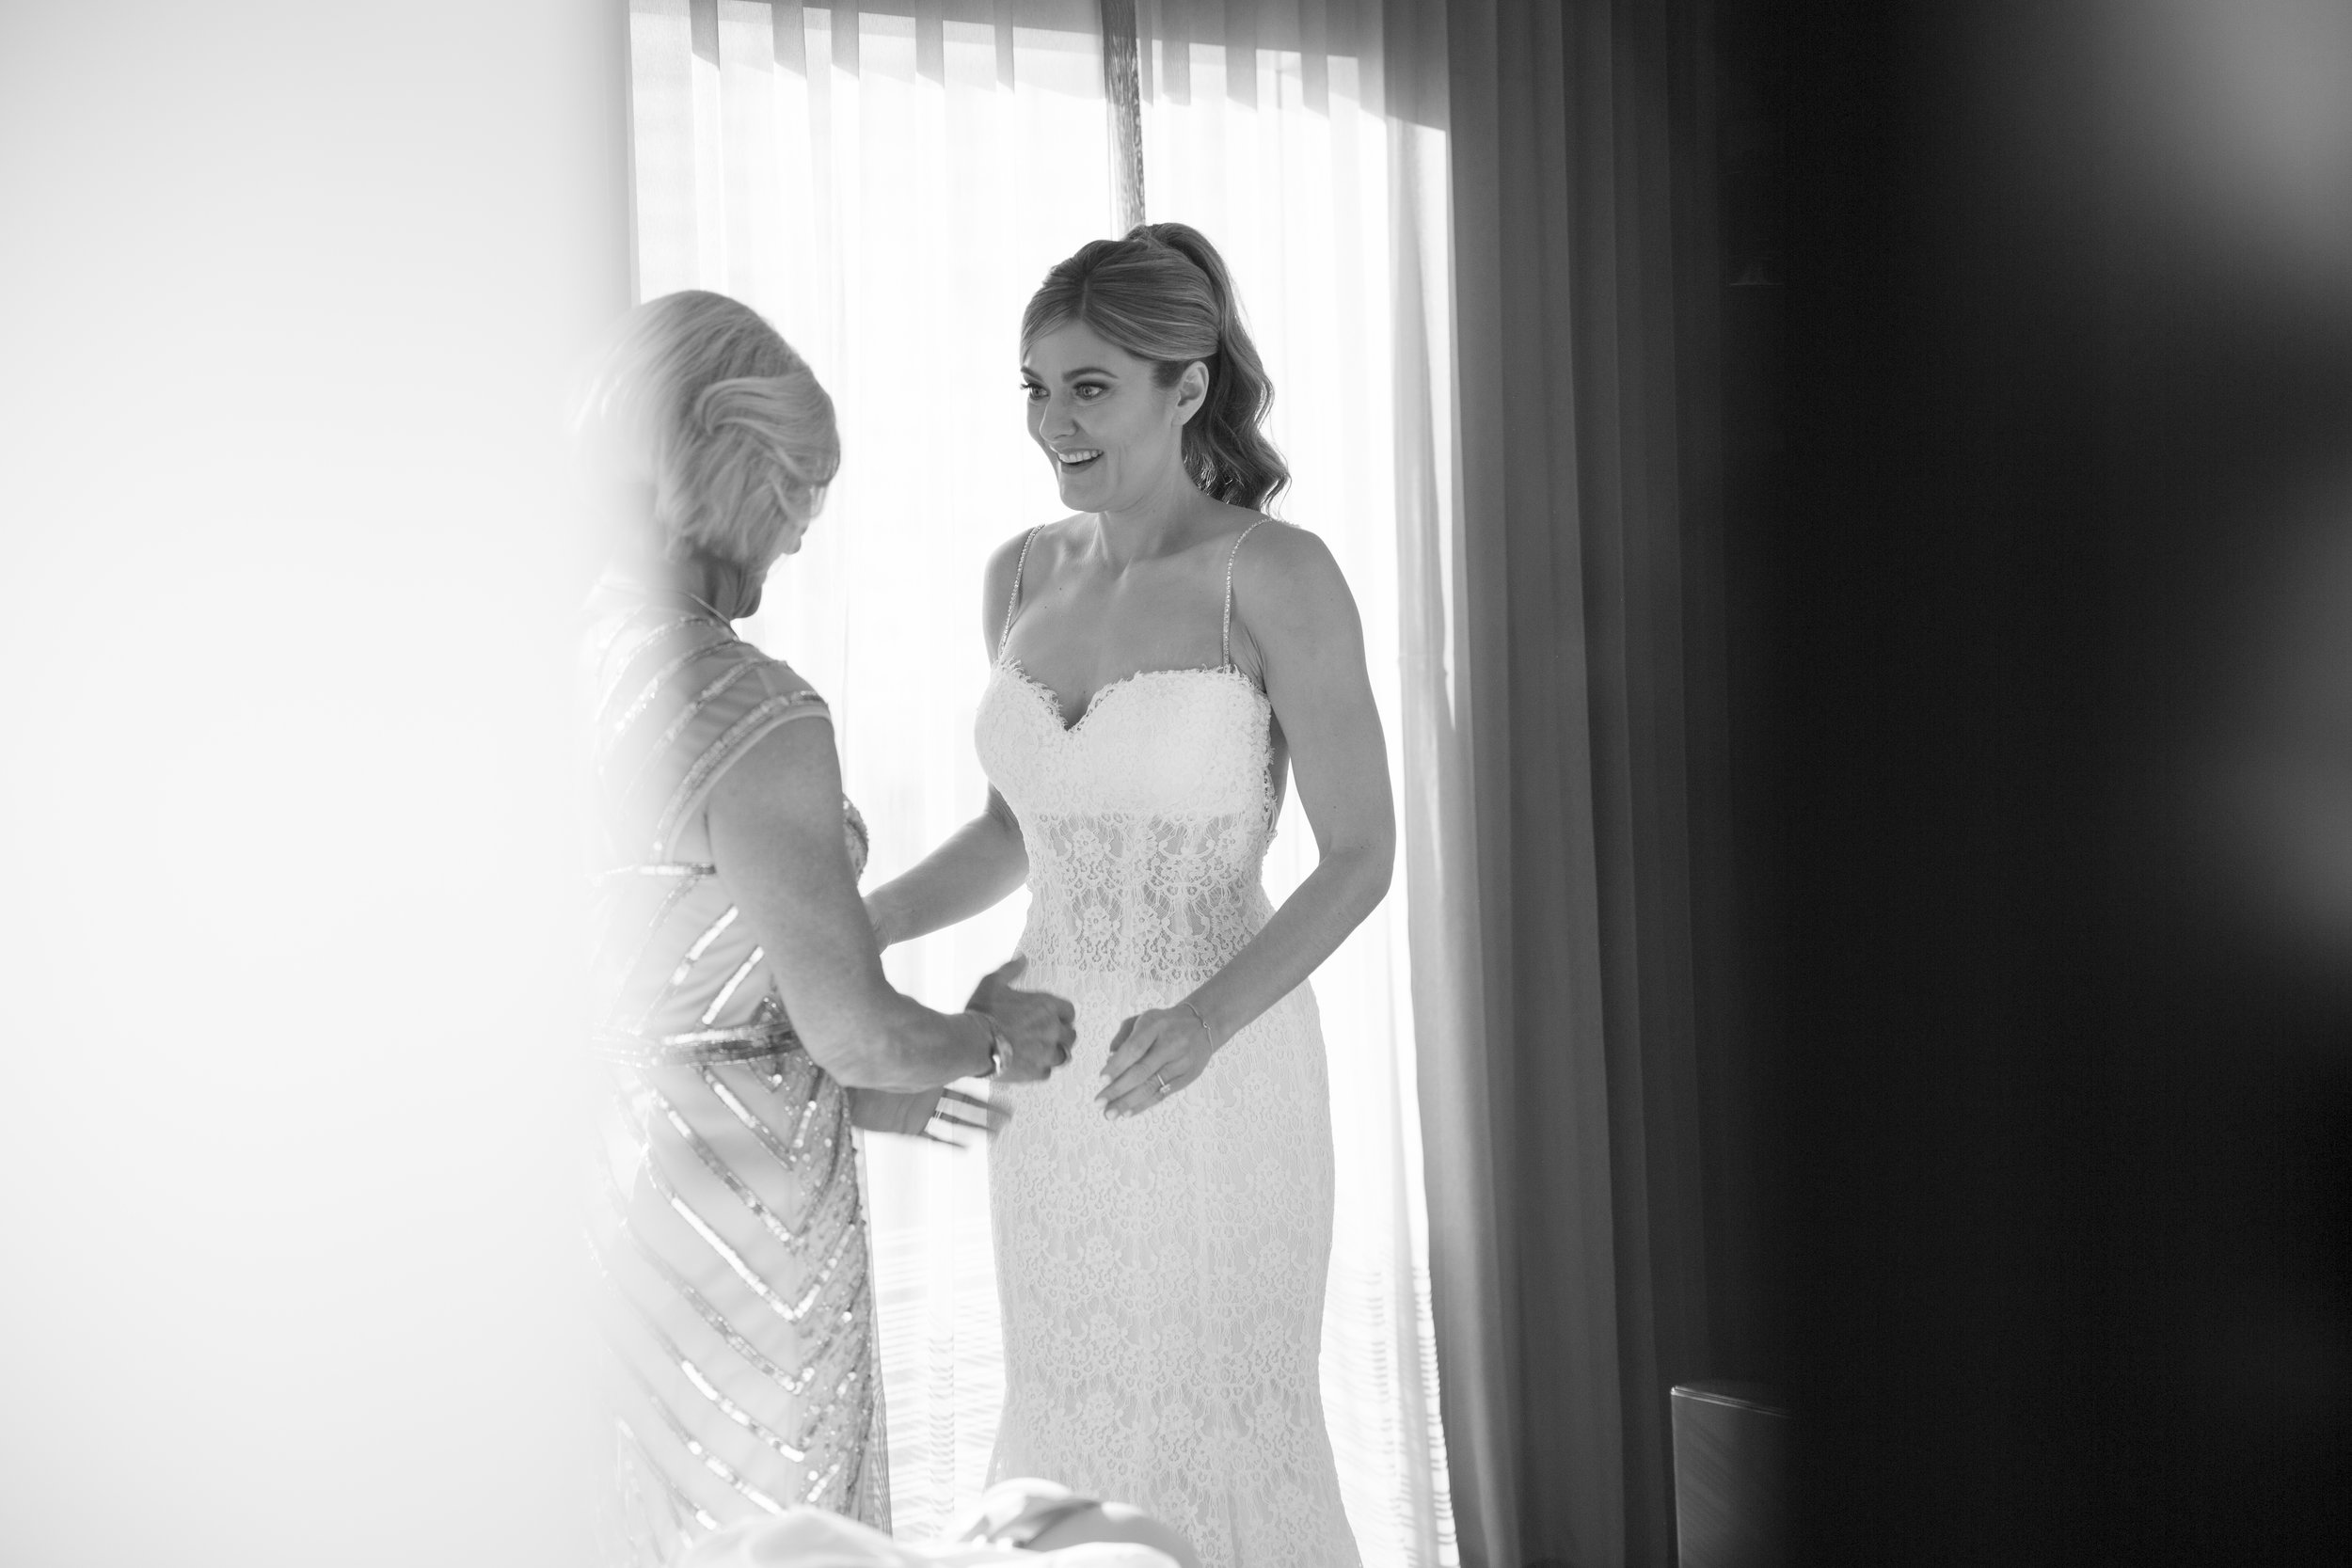 Mother Daughter Moment. Getting Ready. Image by AltF.